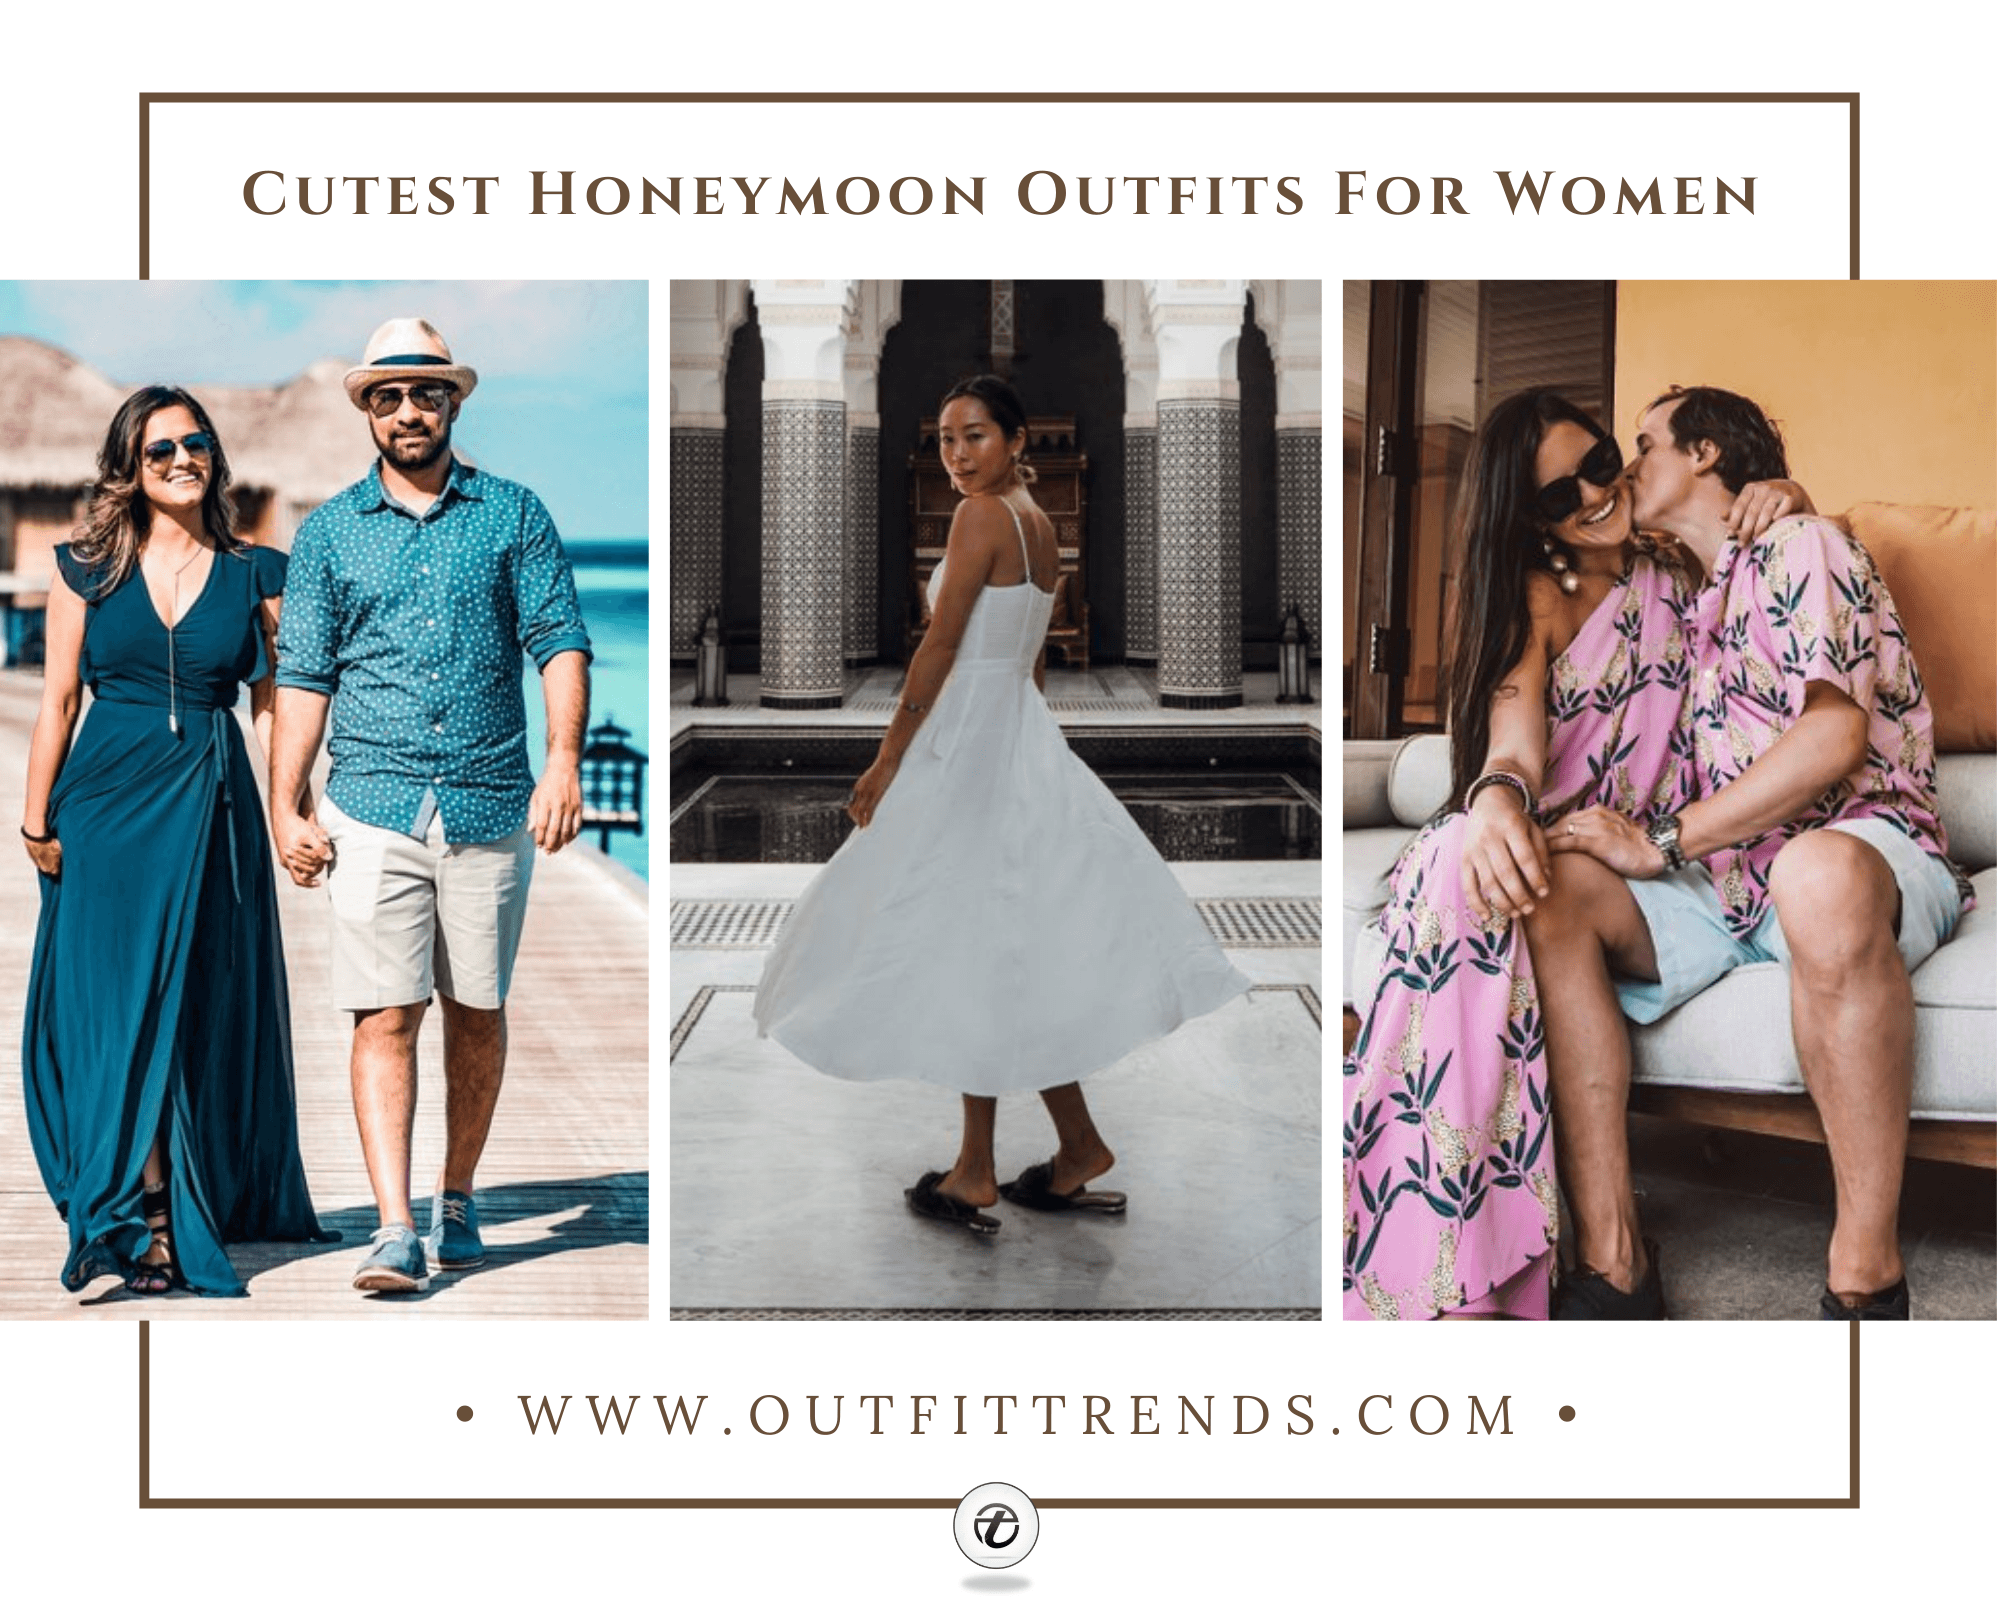 Women Honeymoon Clothes – 23 Outfits to Pack for Honeymoon